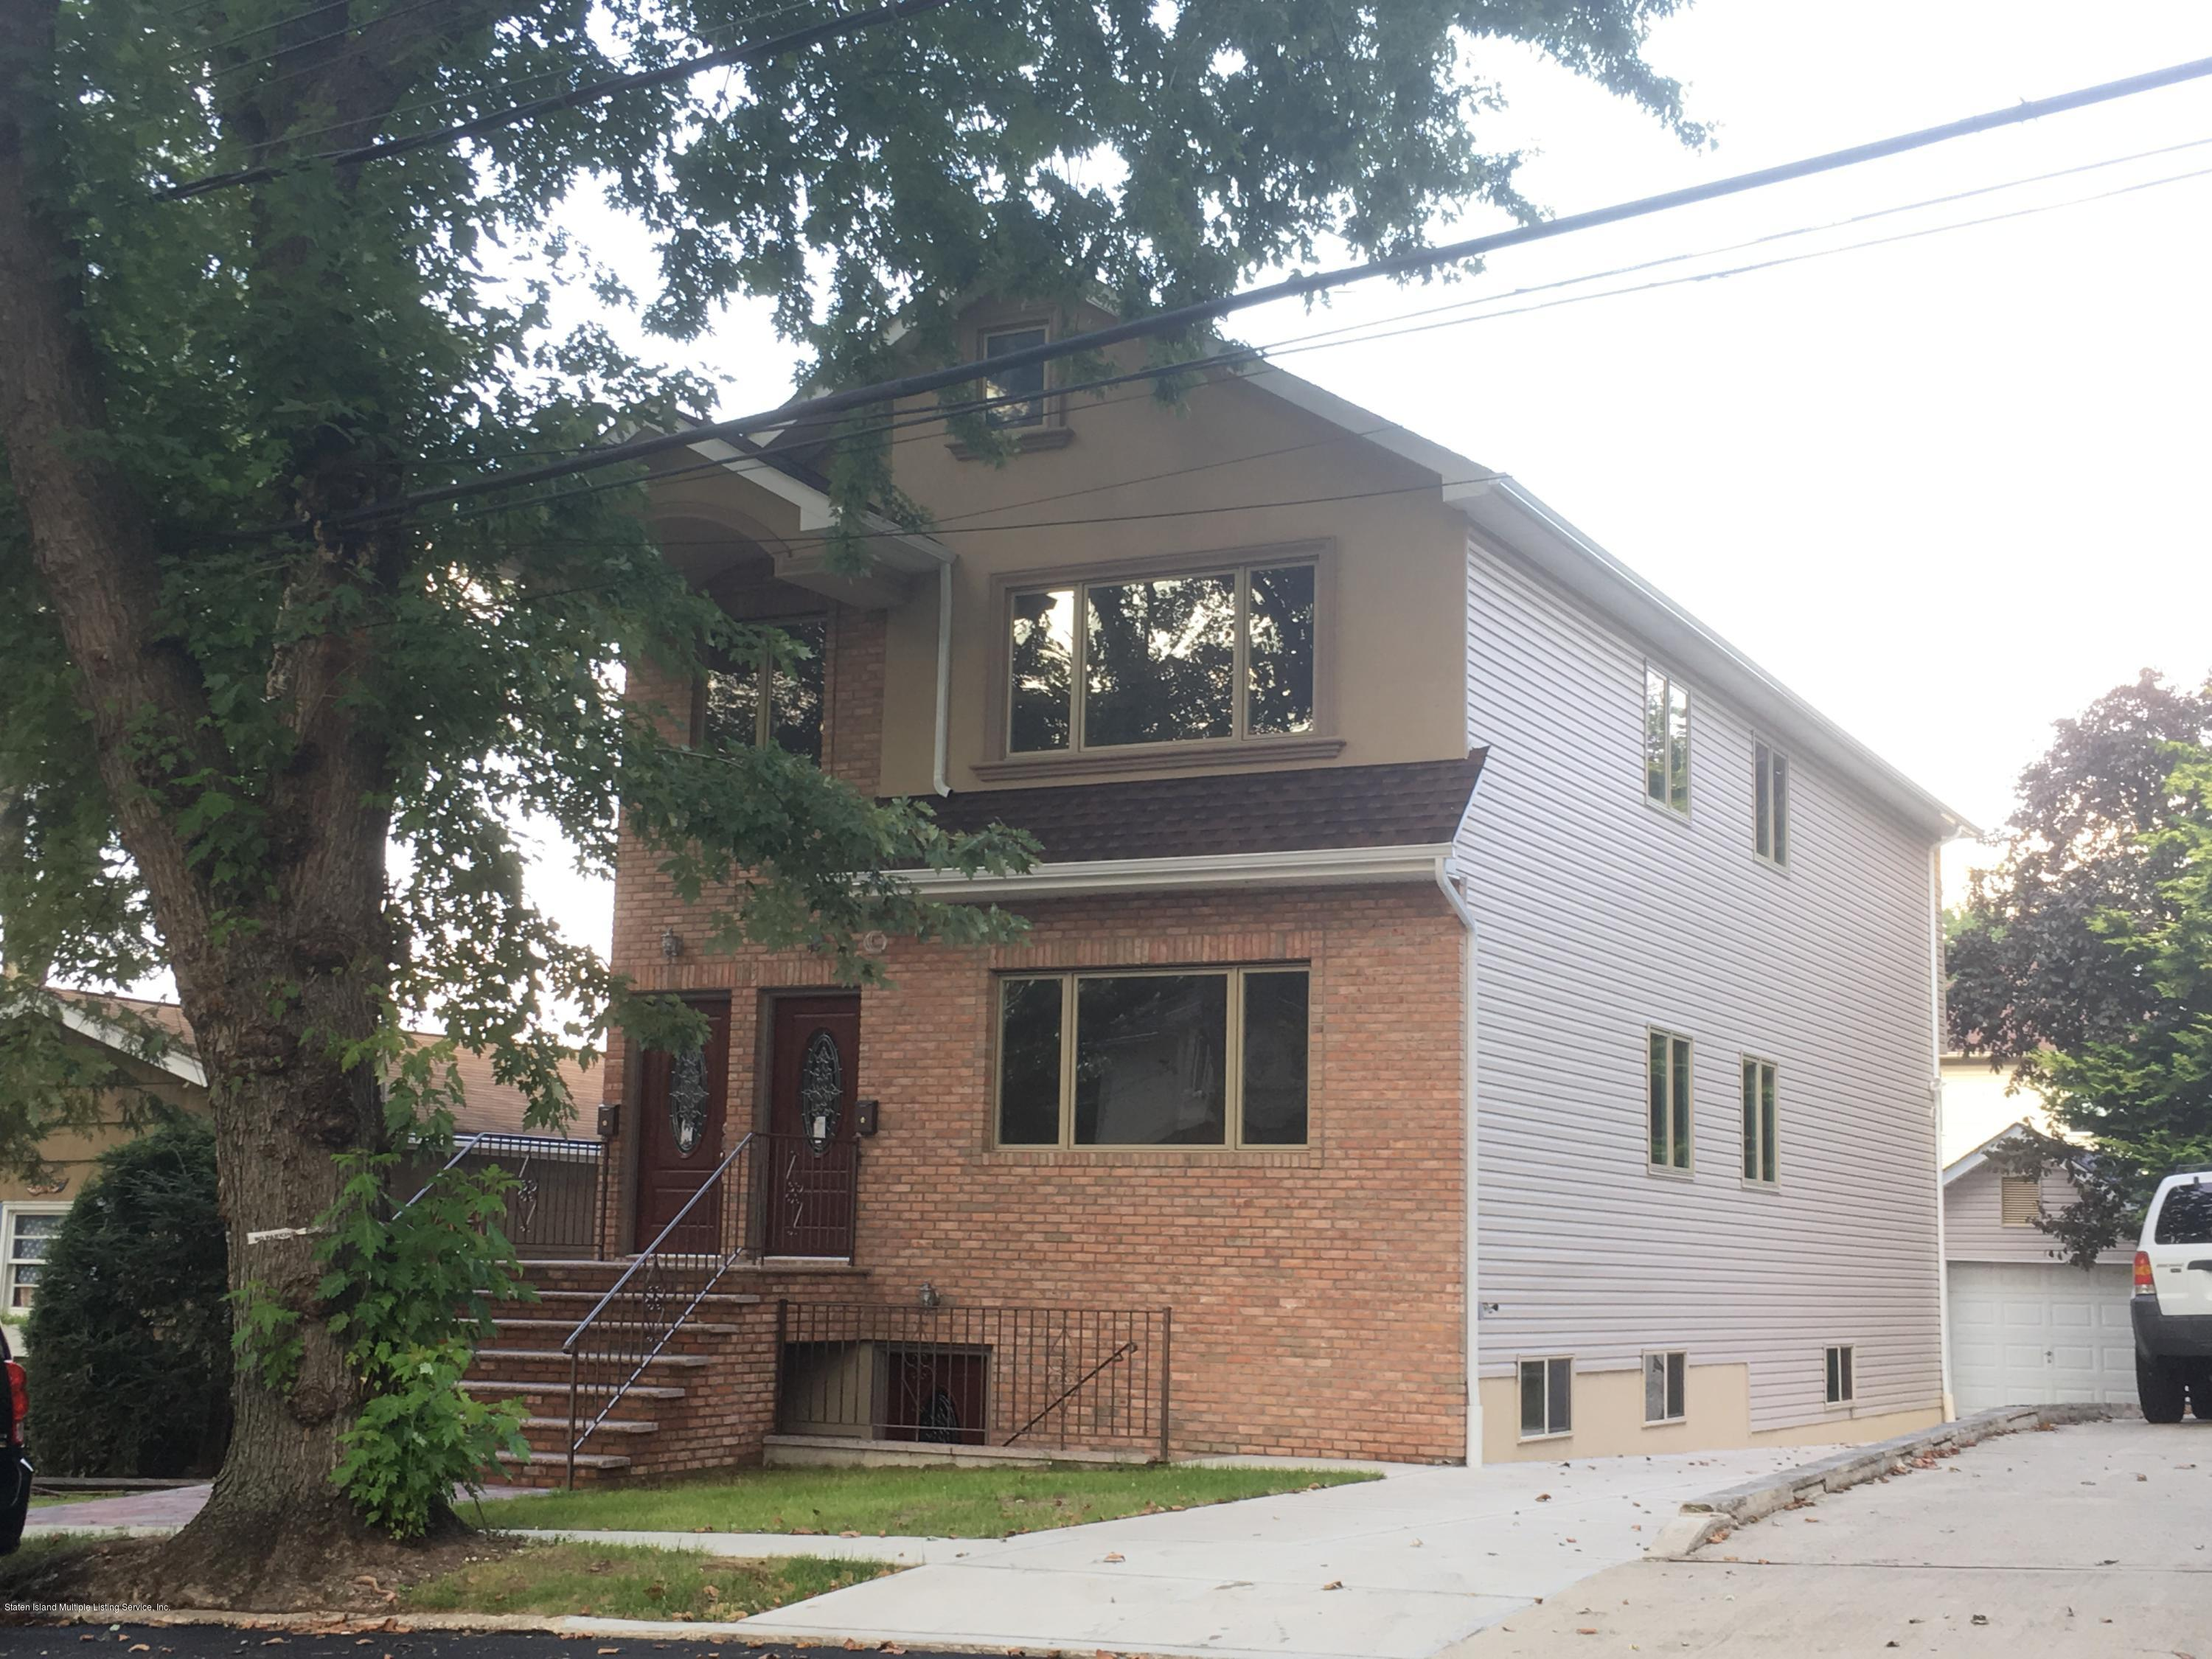 For Rent Residential — Page 41 | New Era Realty NYS